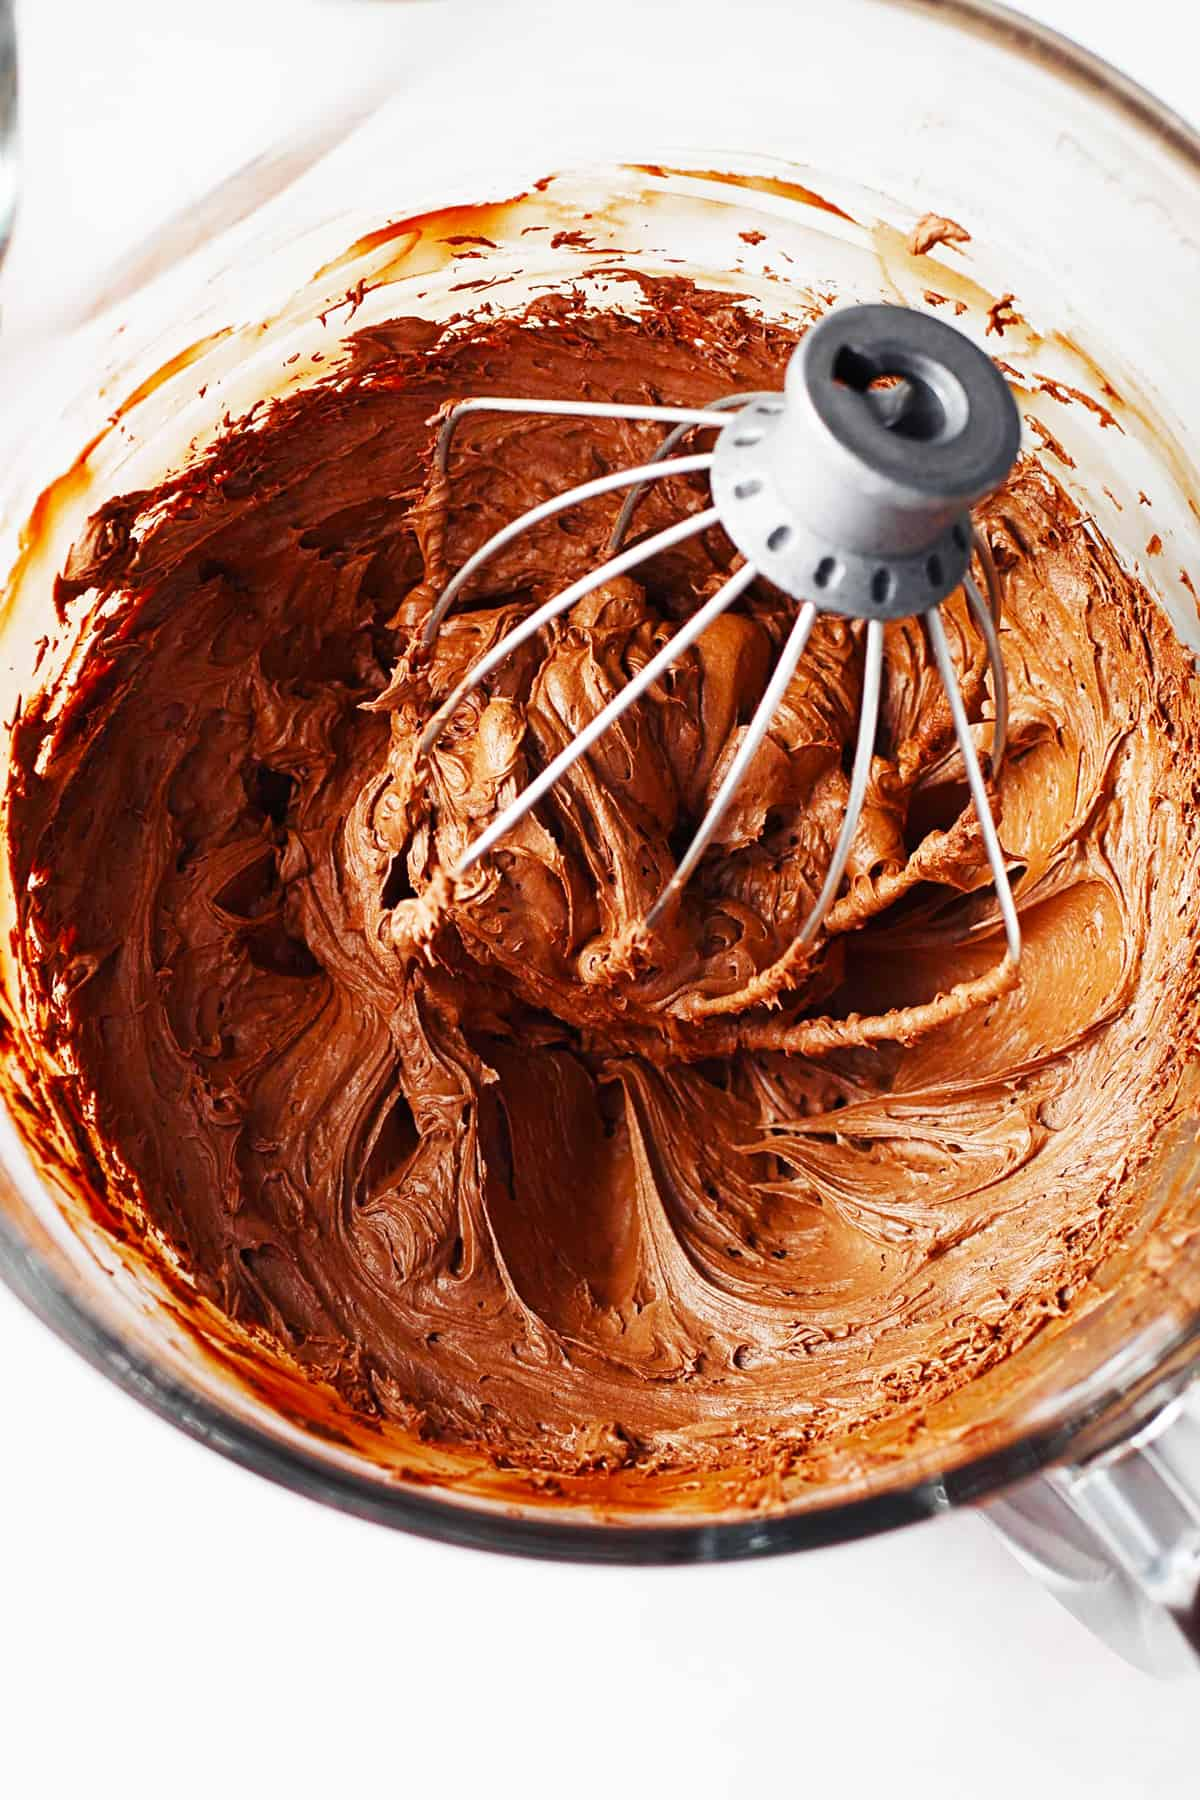 2-Ingredient Paleo Chocolate Frosting